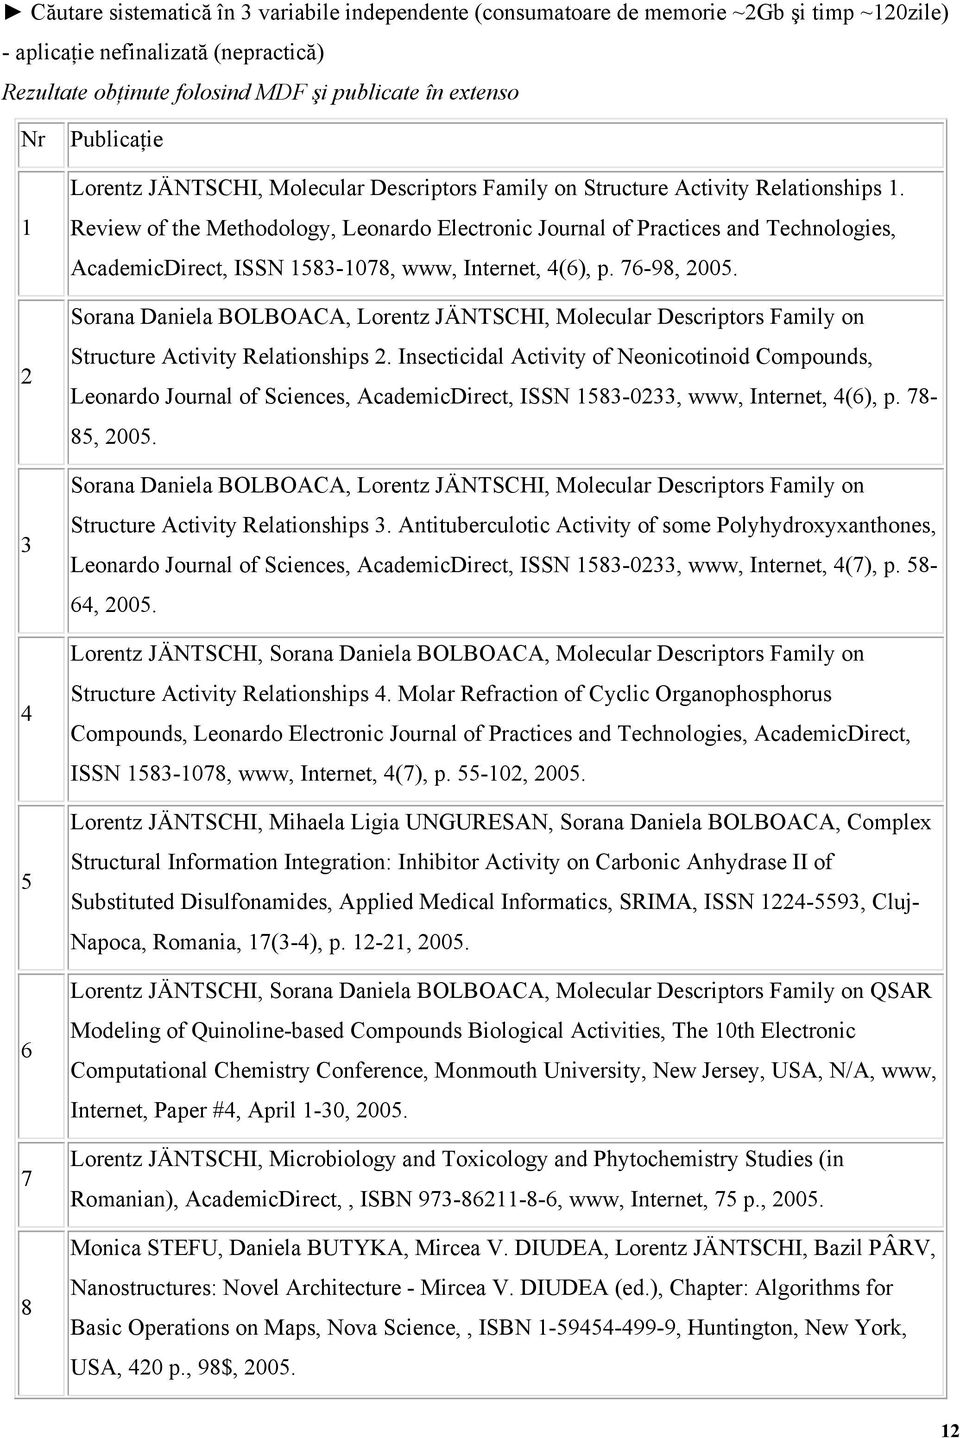 Review of the Methodology, Leonardo Electronic Journal of Practices and Technologies, AcademicDirect, ISSN 1583-1078, www, Internet, 4(6), p. 76-98, 2005.